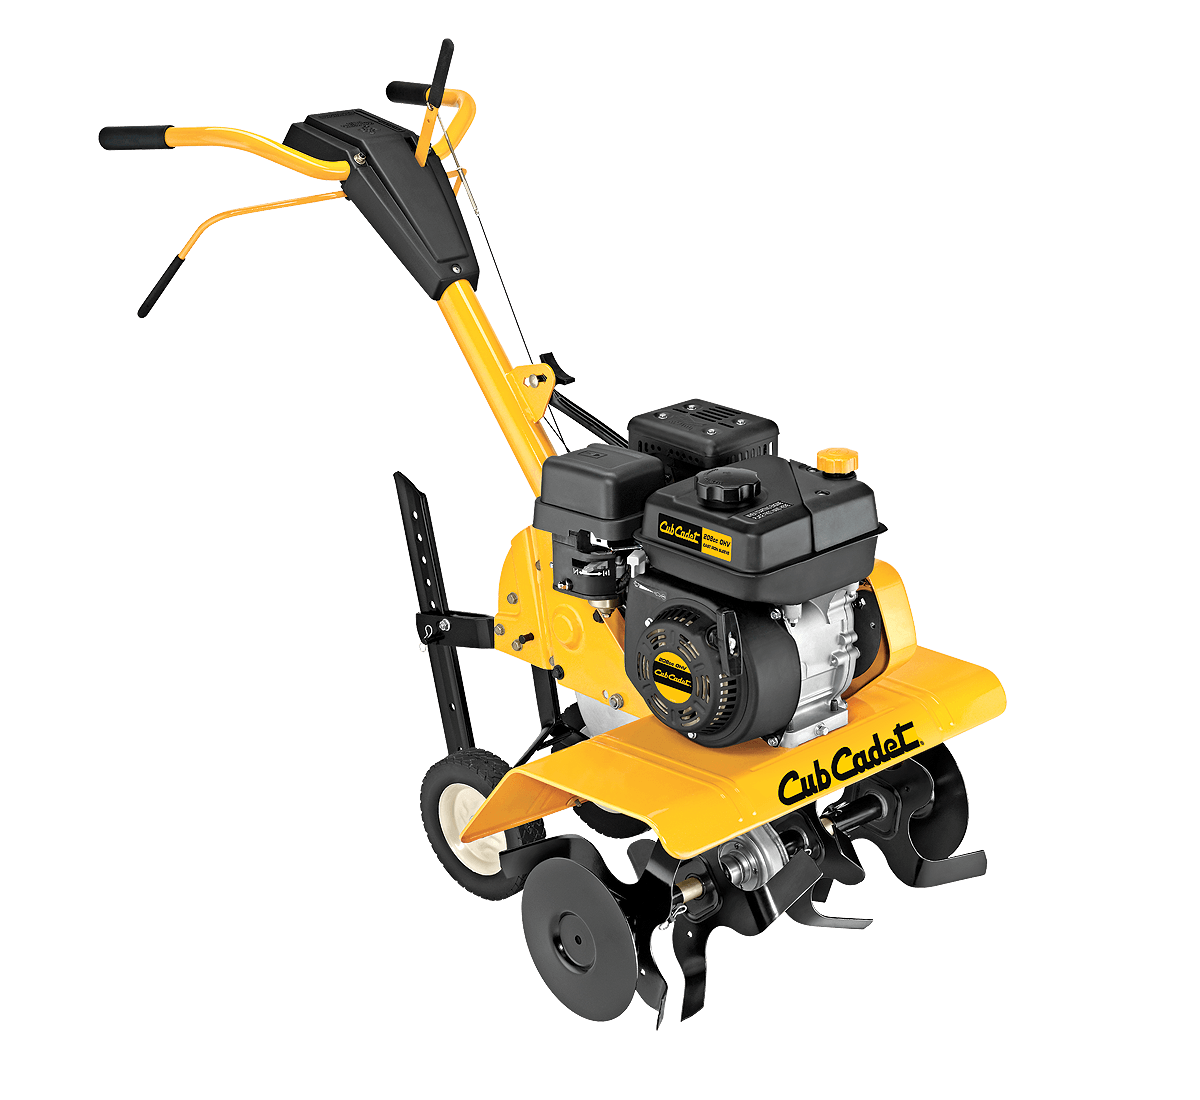 2018 Cub Cadet FT 24 R Garden Tiller in Saint Marys, Pennsylvania